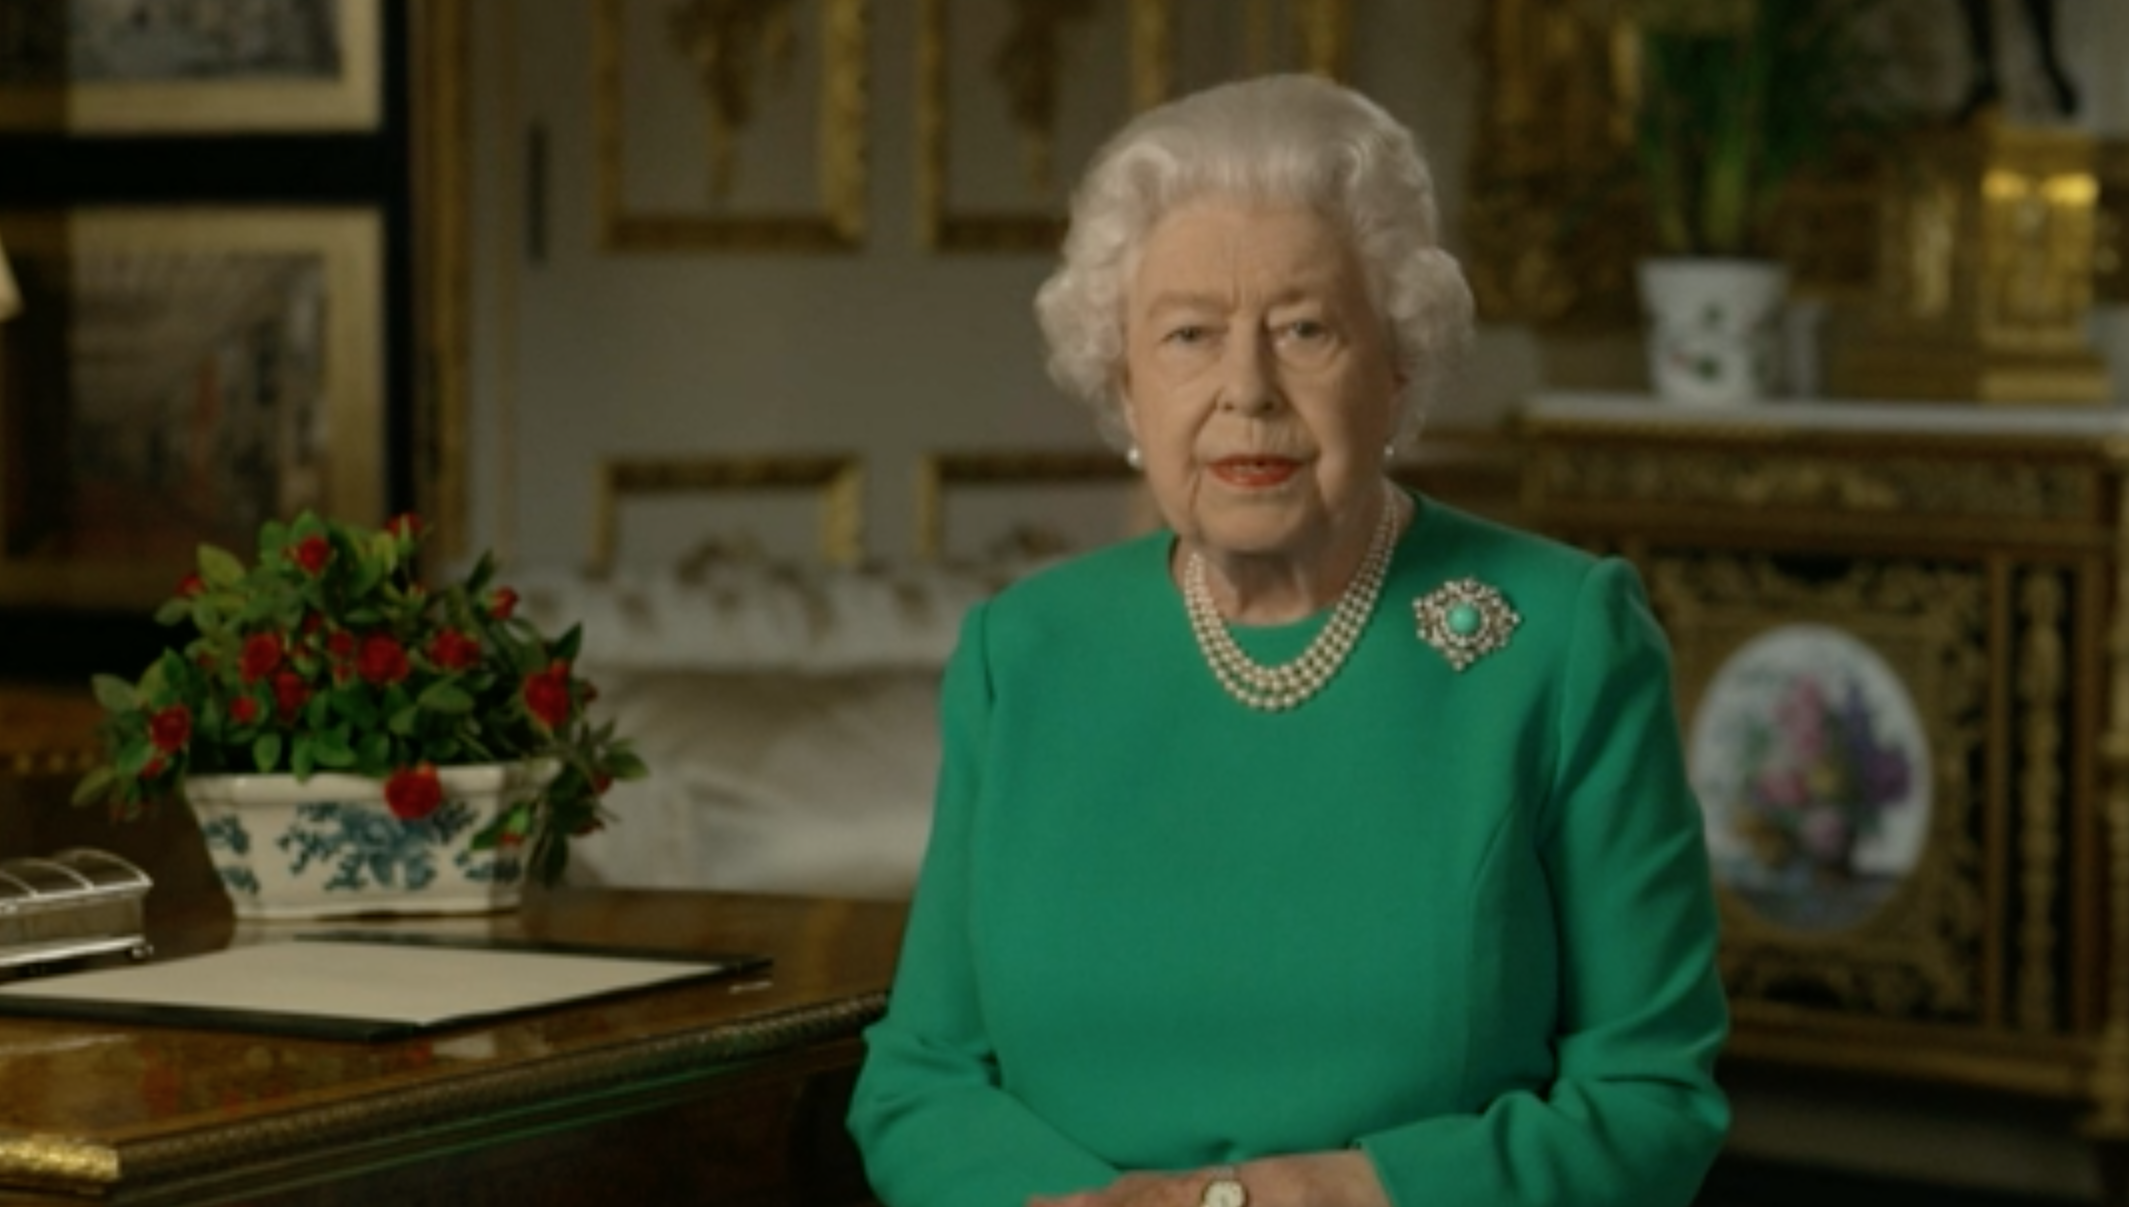 Coronavirus: The extraordinary lengths to keep the Queen safe during her speech